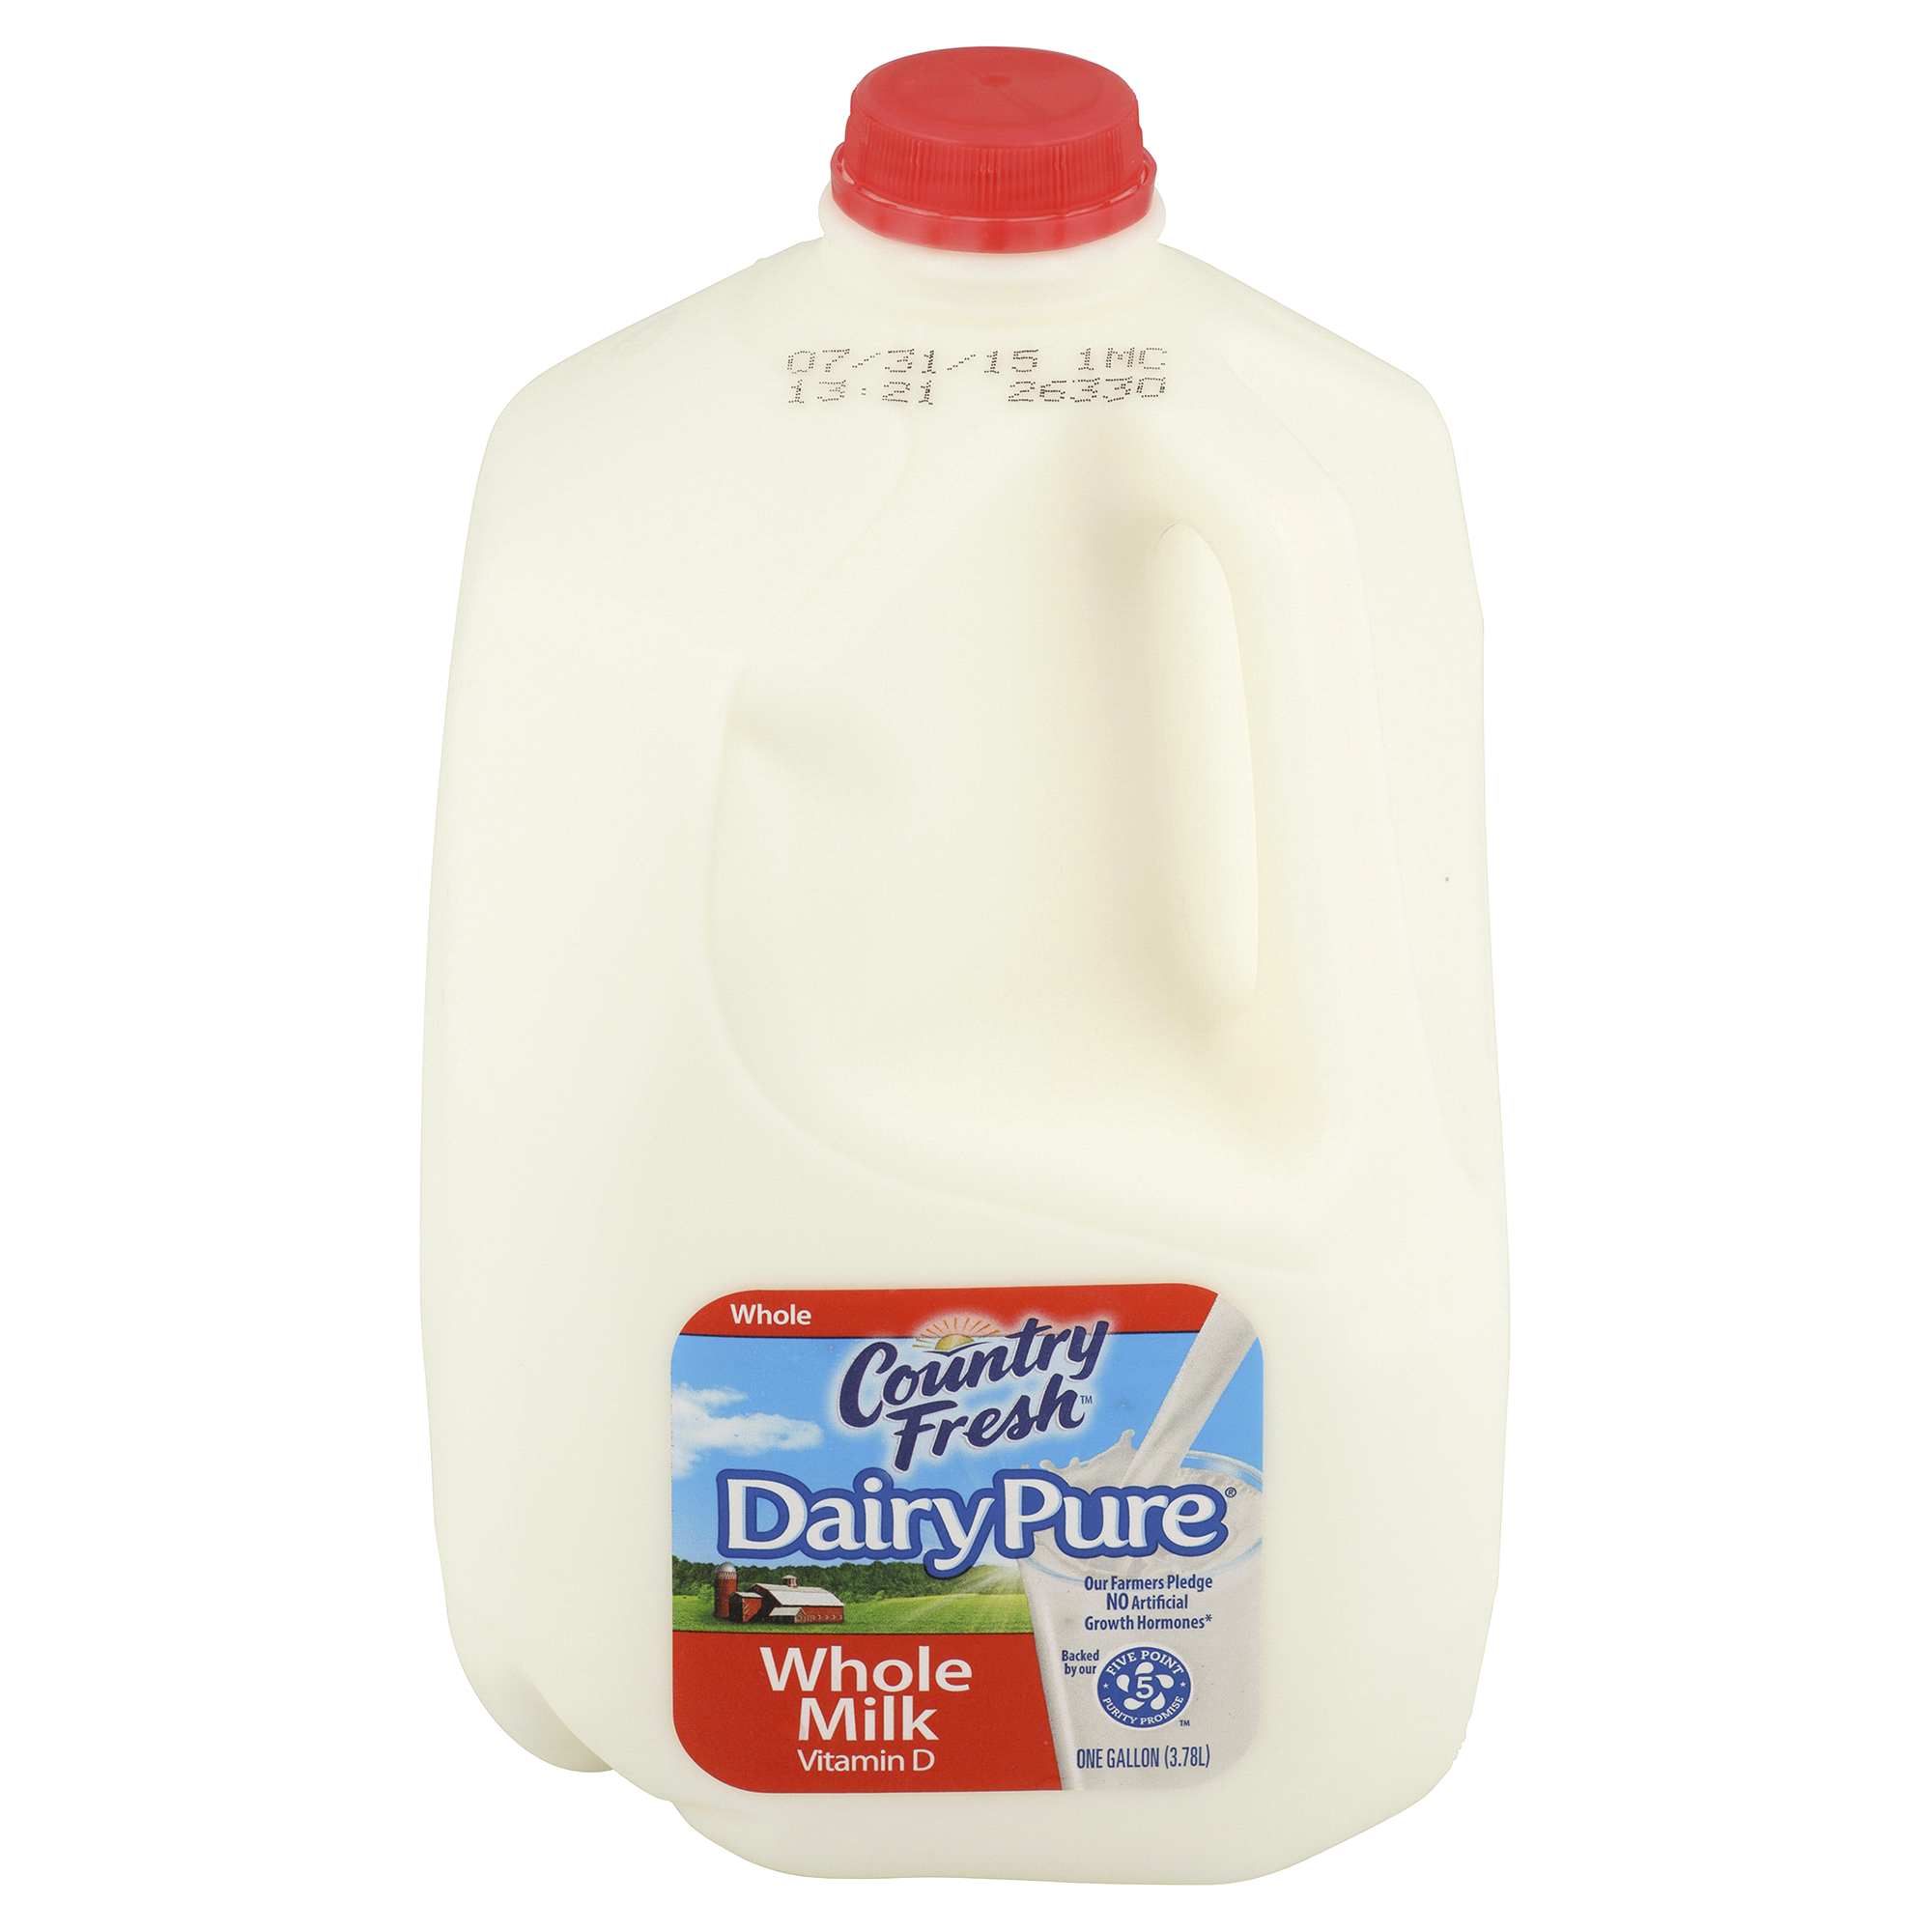 2000x2000 Country Fresh Dairy Pure Whole Milk 1 Gallon